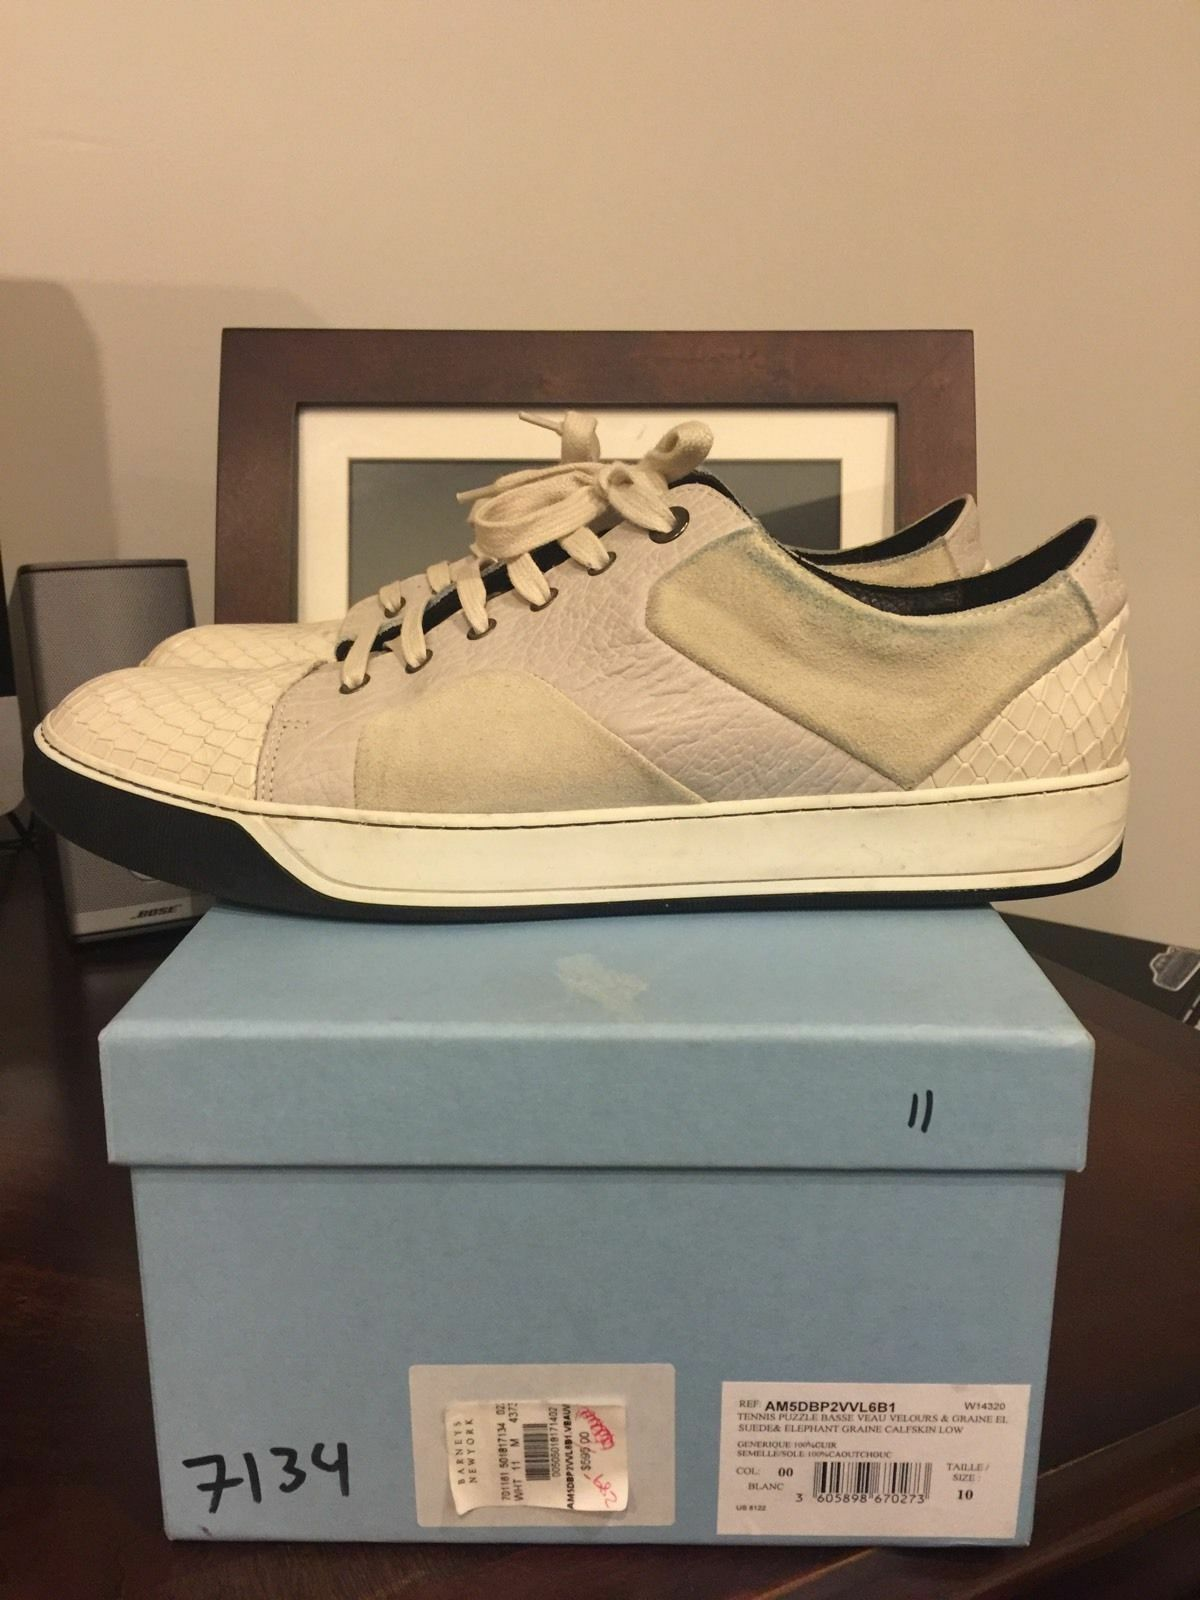 Lanvin Off White Suede Leather Snake Skin Patchwork Sneakers Low Top 11 44 595